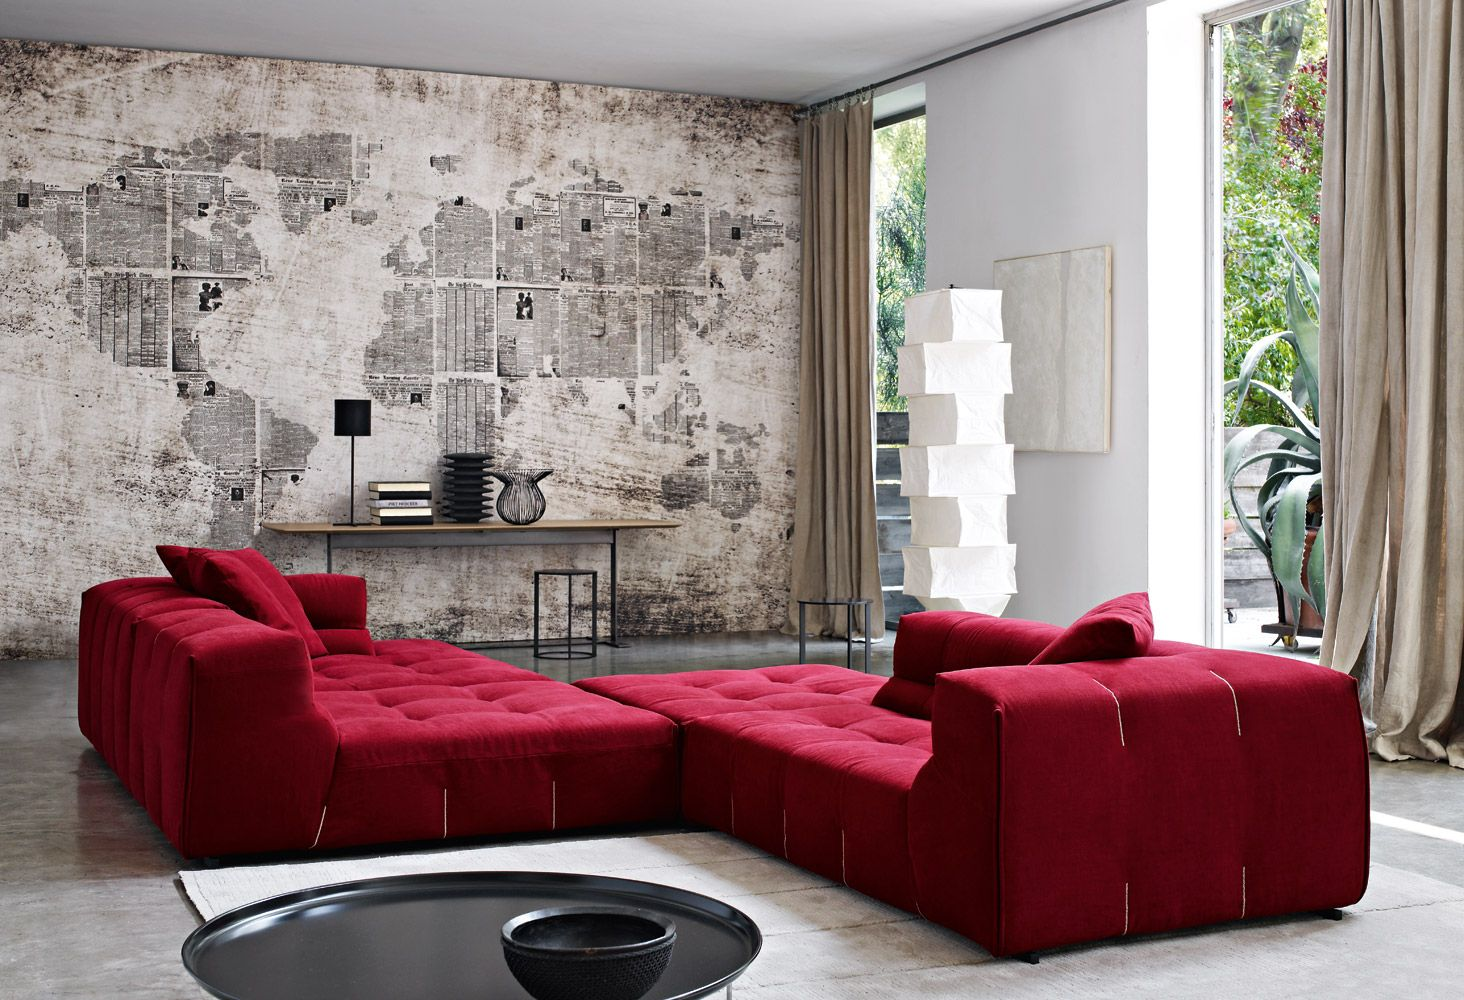 Living room with cute interior of red sofa and cushion between table - Amazing Sofa With Latest Designs Surprising Red White Living Room Design With World Map Wallpapers And Fantastic Red Chaise Lounge Sofas Design